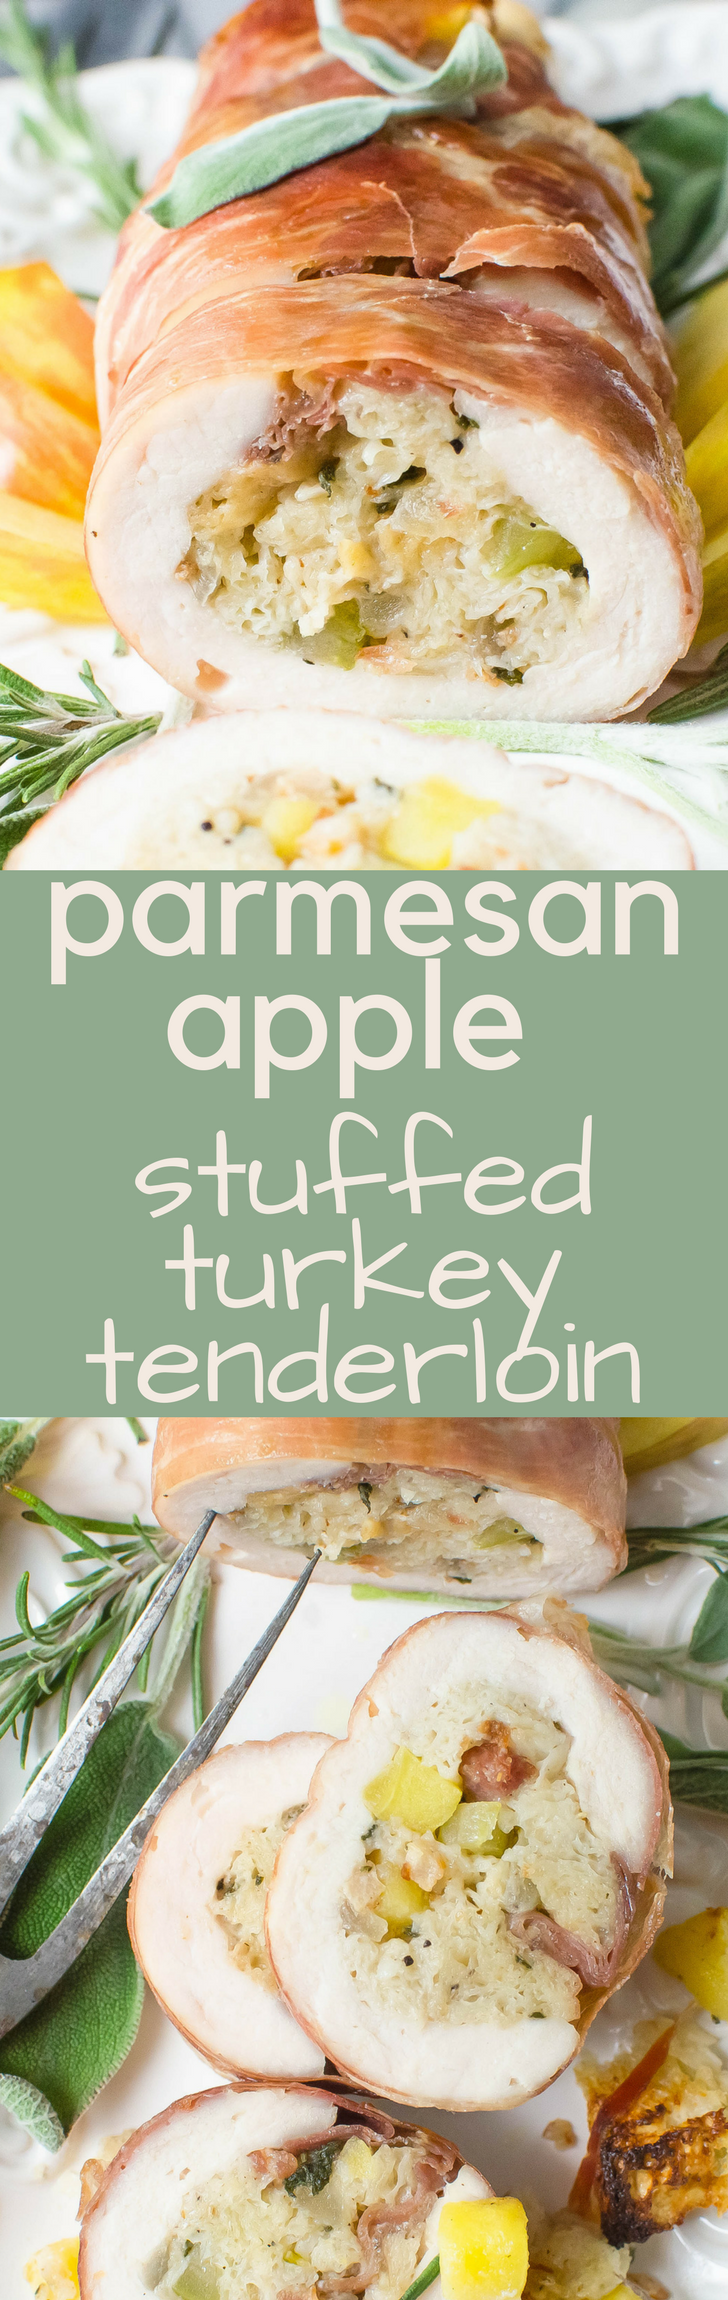 Easy Parmesan Apple Stuffed Turkey Tenderloin is a Thanksgiving meal for a smaller crowd. Homemade stuffing and gravy adds a holiday feel to any occasion!